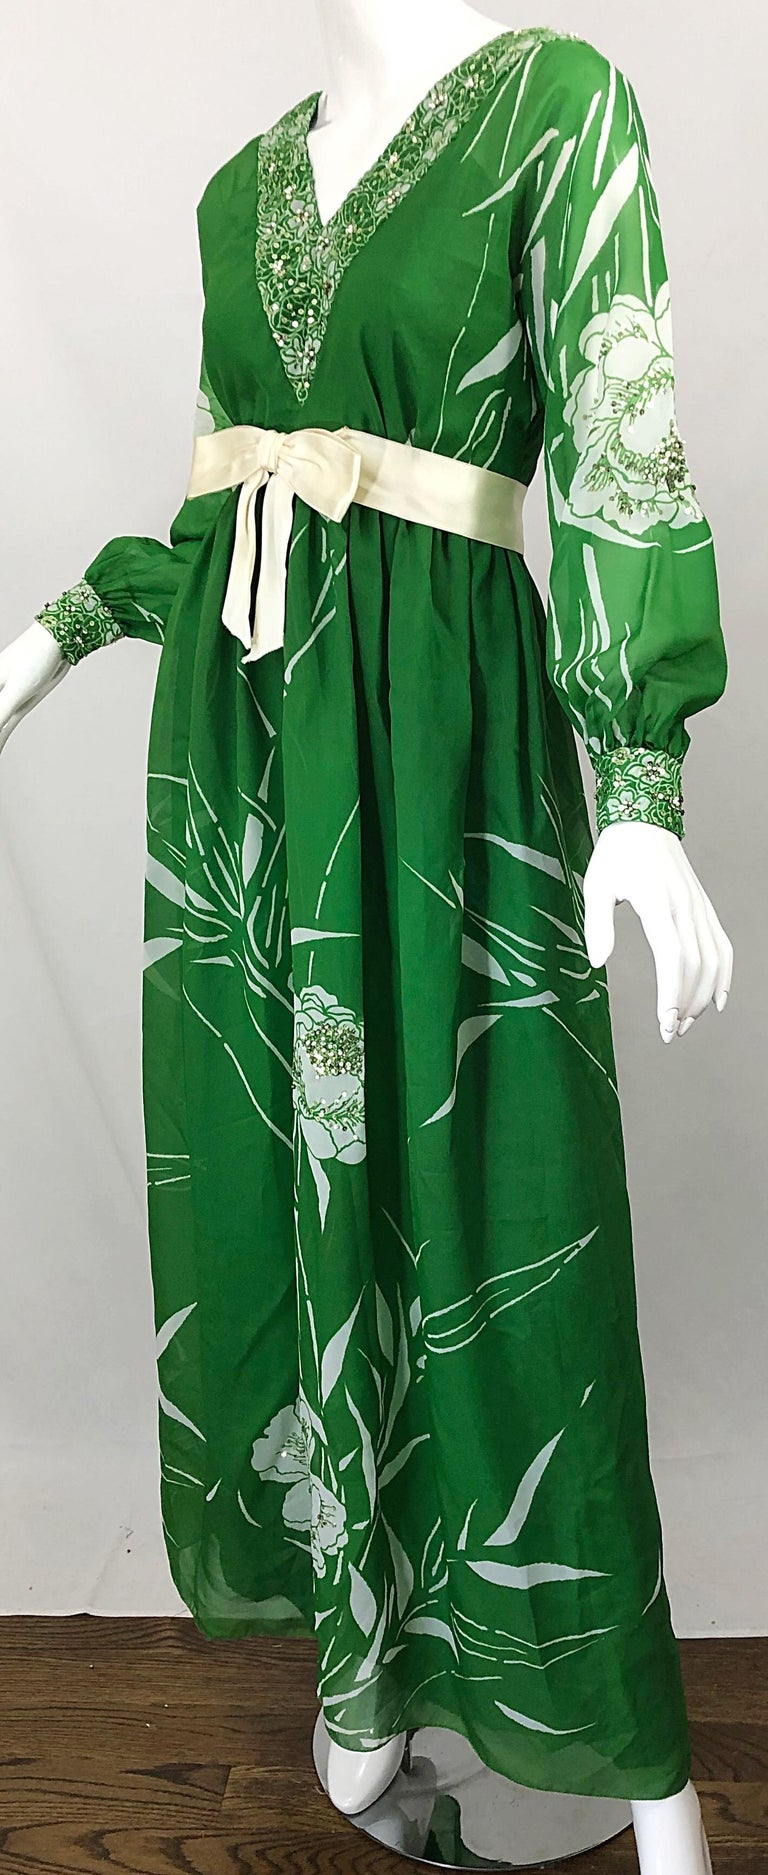 1970s Victoria Royal Kelly Green + White Abstract Floral Sequined Chiffon Gown For Sale 7